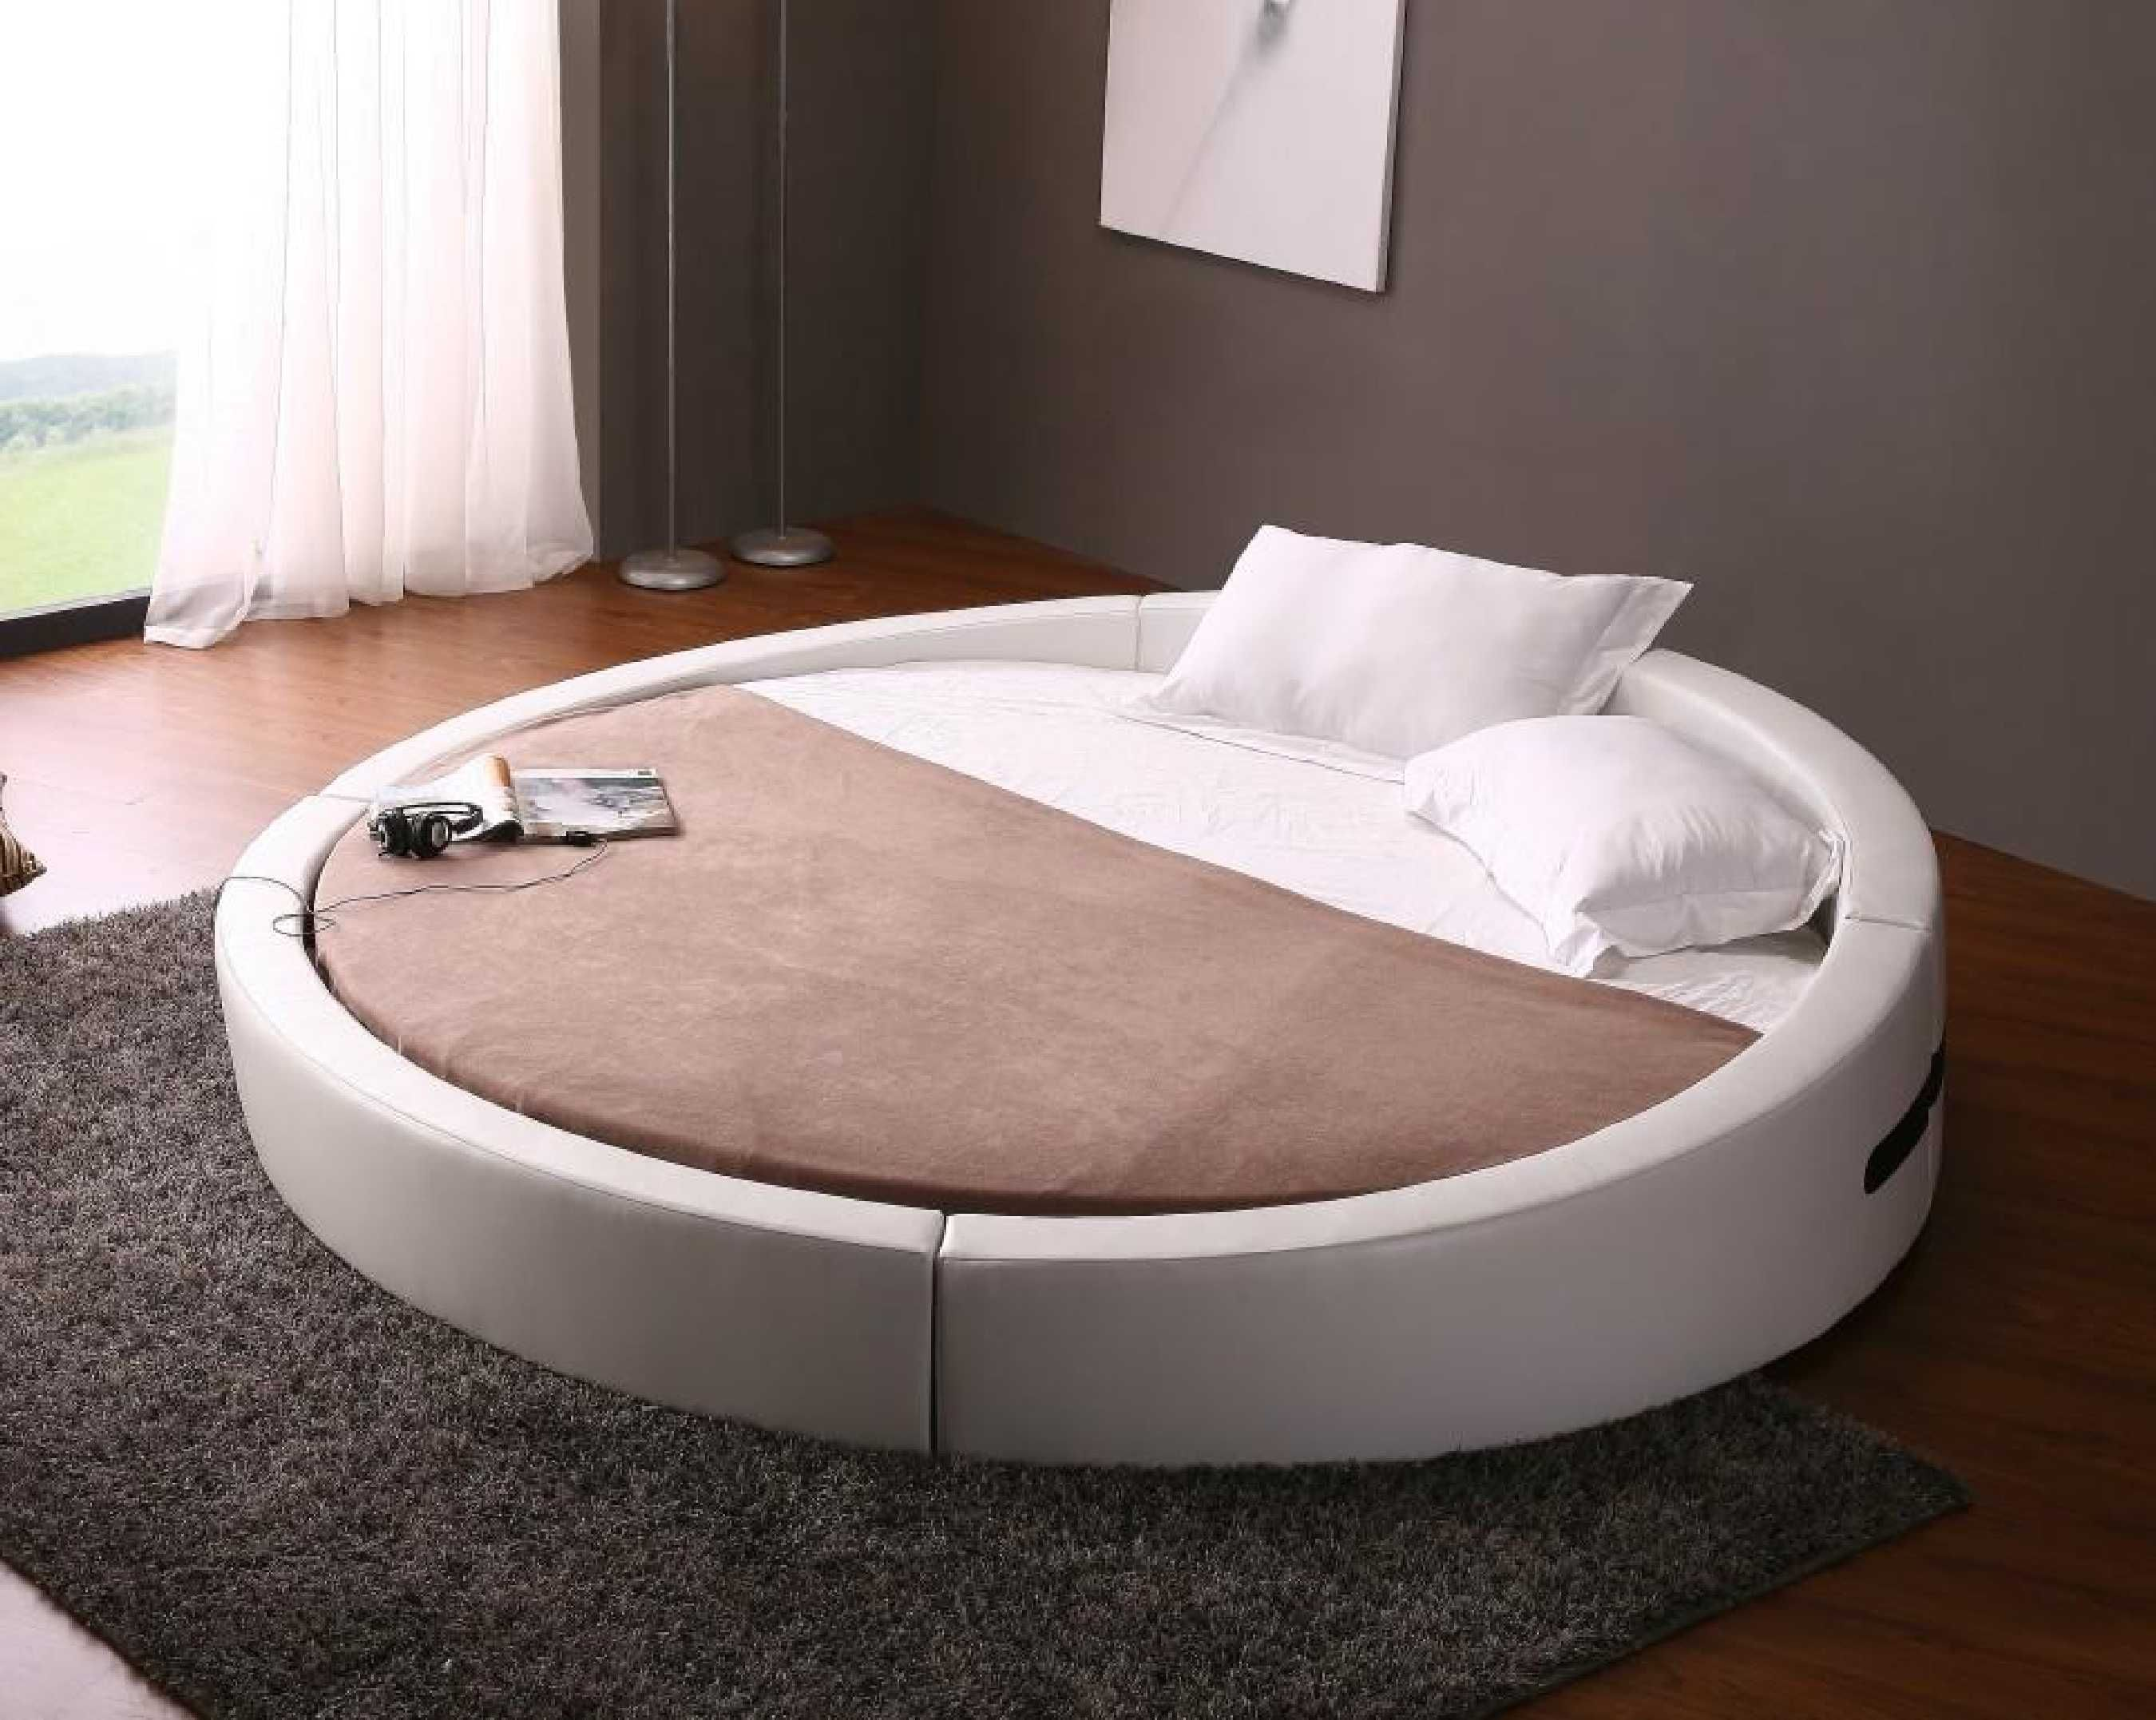 Furniture Opus Modern Round Leather Bed Is A Unique That Perfect For Updating Your Bedroom To Contemporary Style The Has Mattress